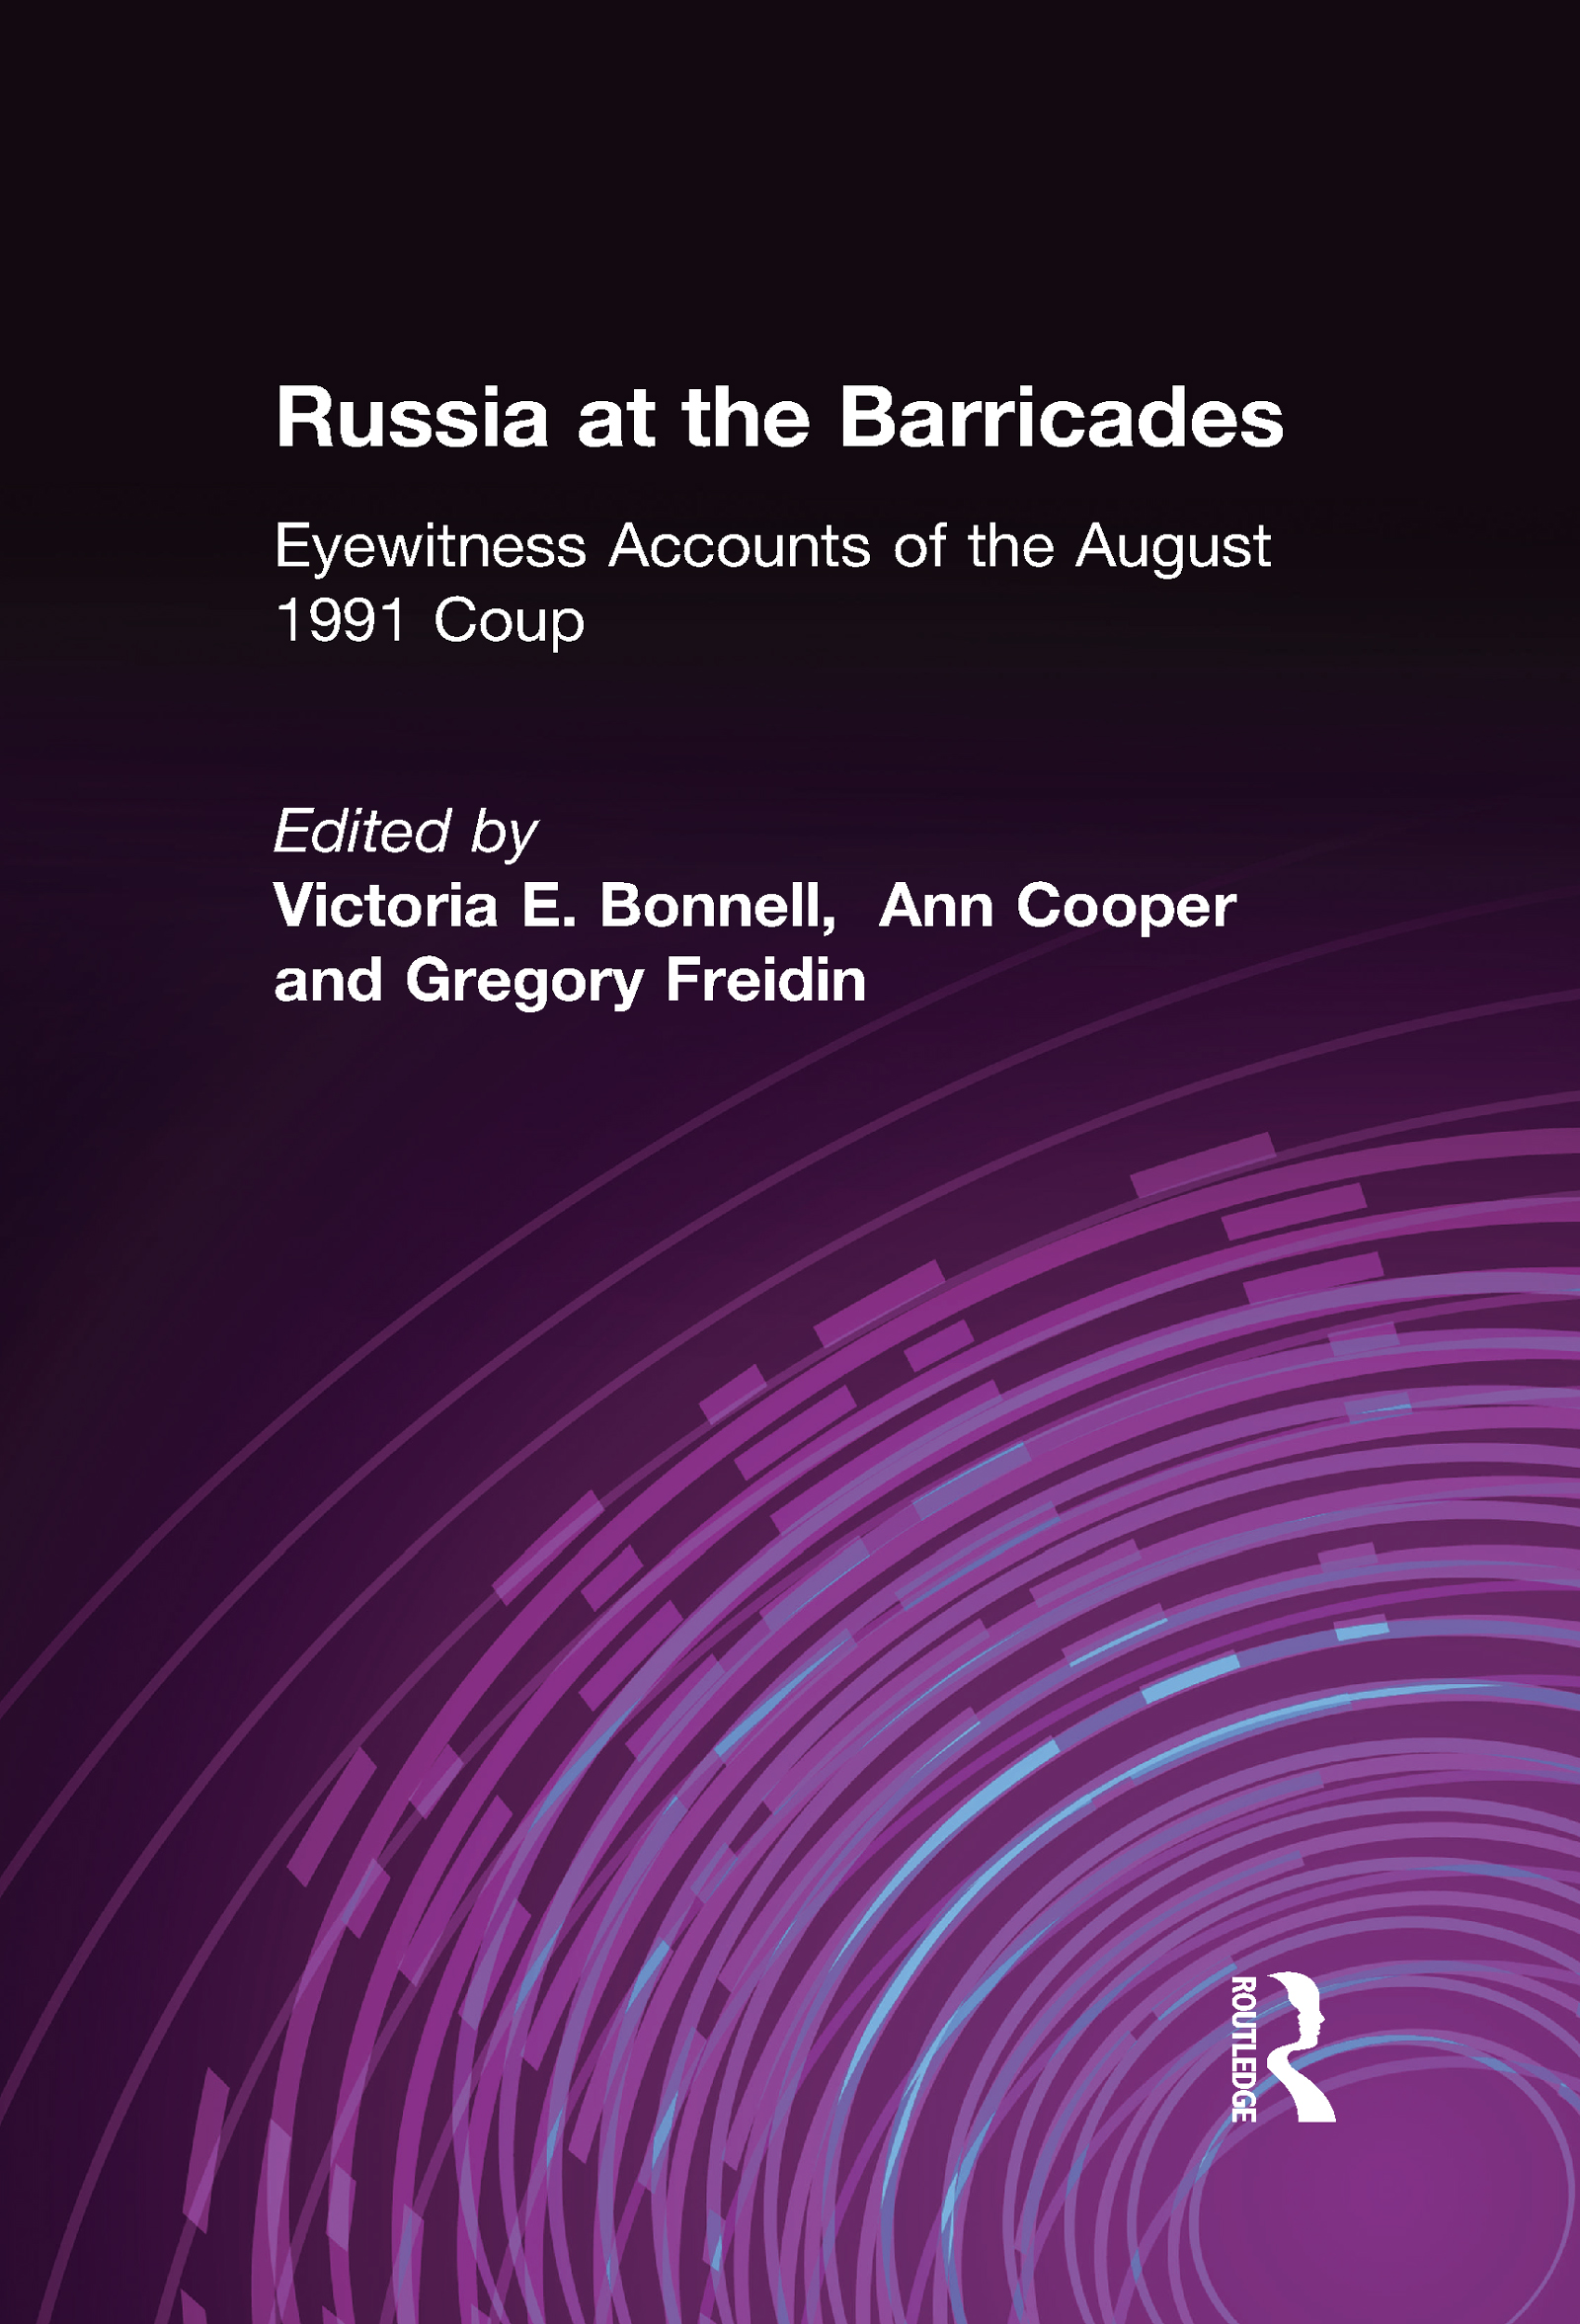 Russia at the Barricades: Eyewitness Accounts of the August 1991 Coup: Eyewitness Accounts of the August 1991 Coup, 1st Edition (Paperback) book cover